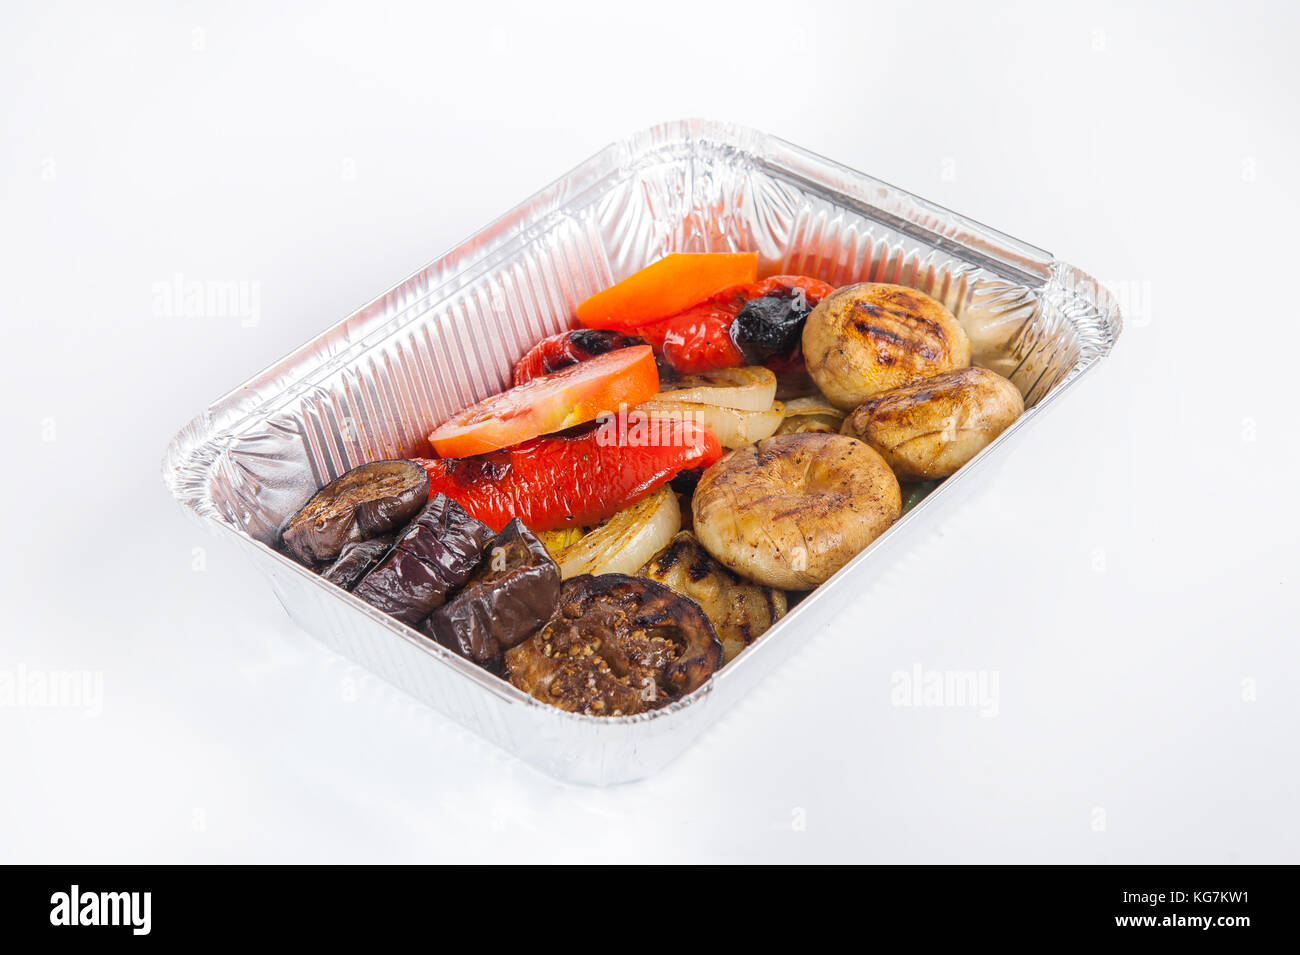 Healthy restaurant food delivery in foil box green stewed cabbage healthy restaurant food delivery in foil box green stewed cabbage roll with veal steak on brown bread and other dishes beef and vegetable with cherr forumfinder Choice Image